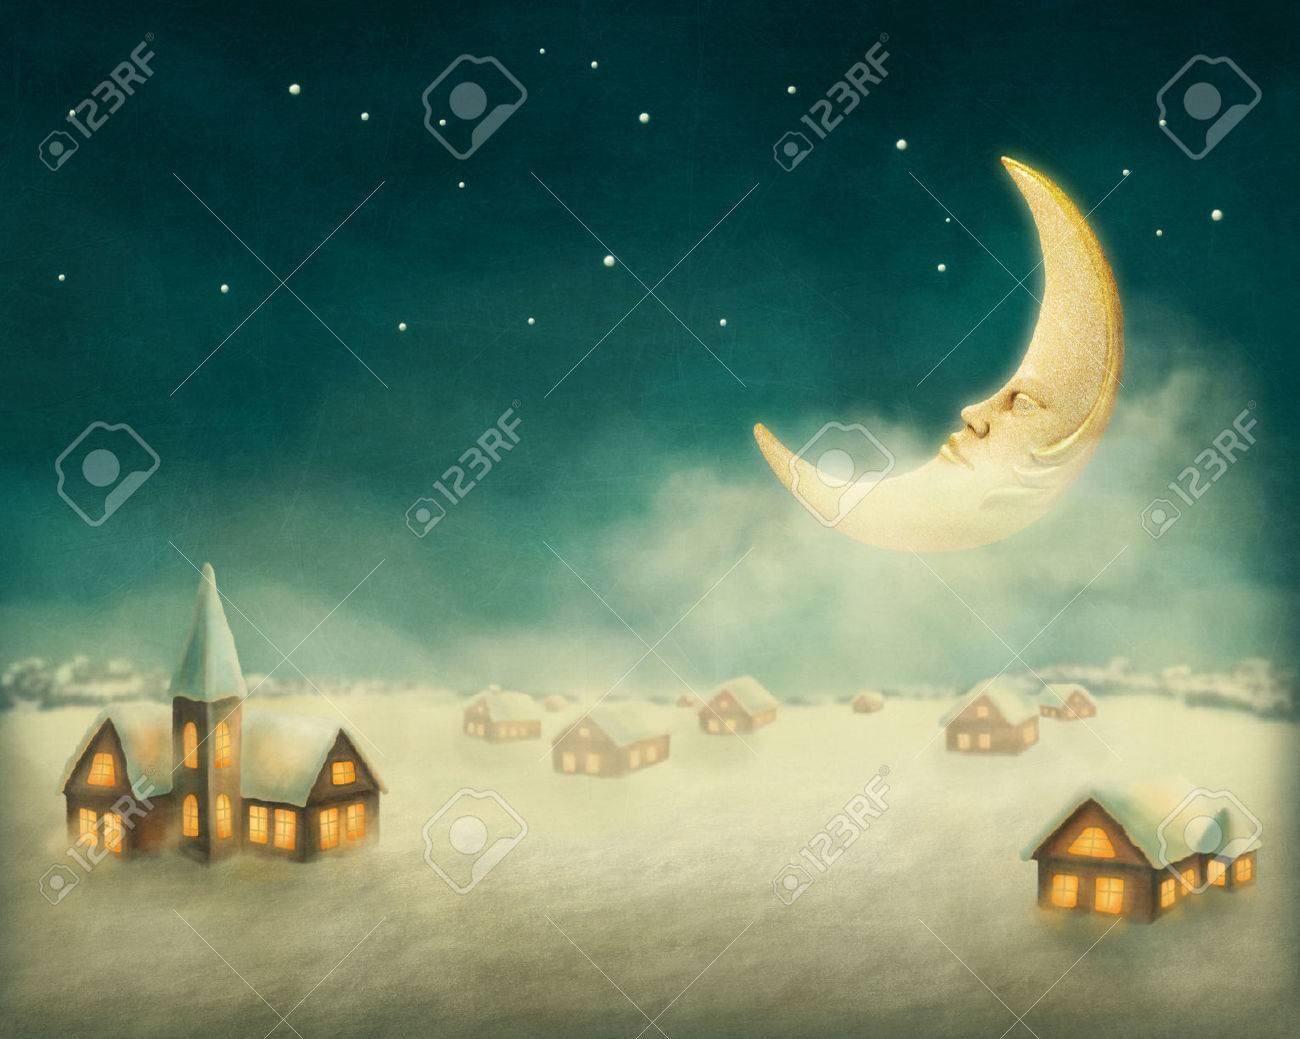 Winter christmas houses in a village Stock Photo - 23997701